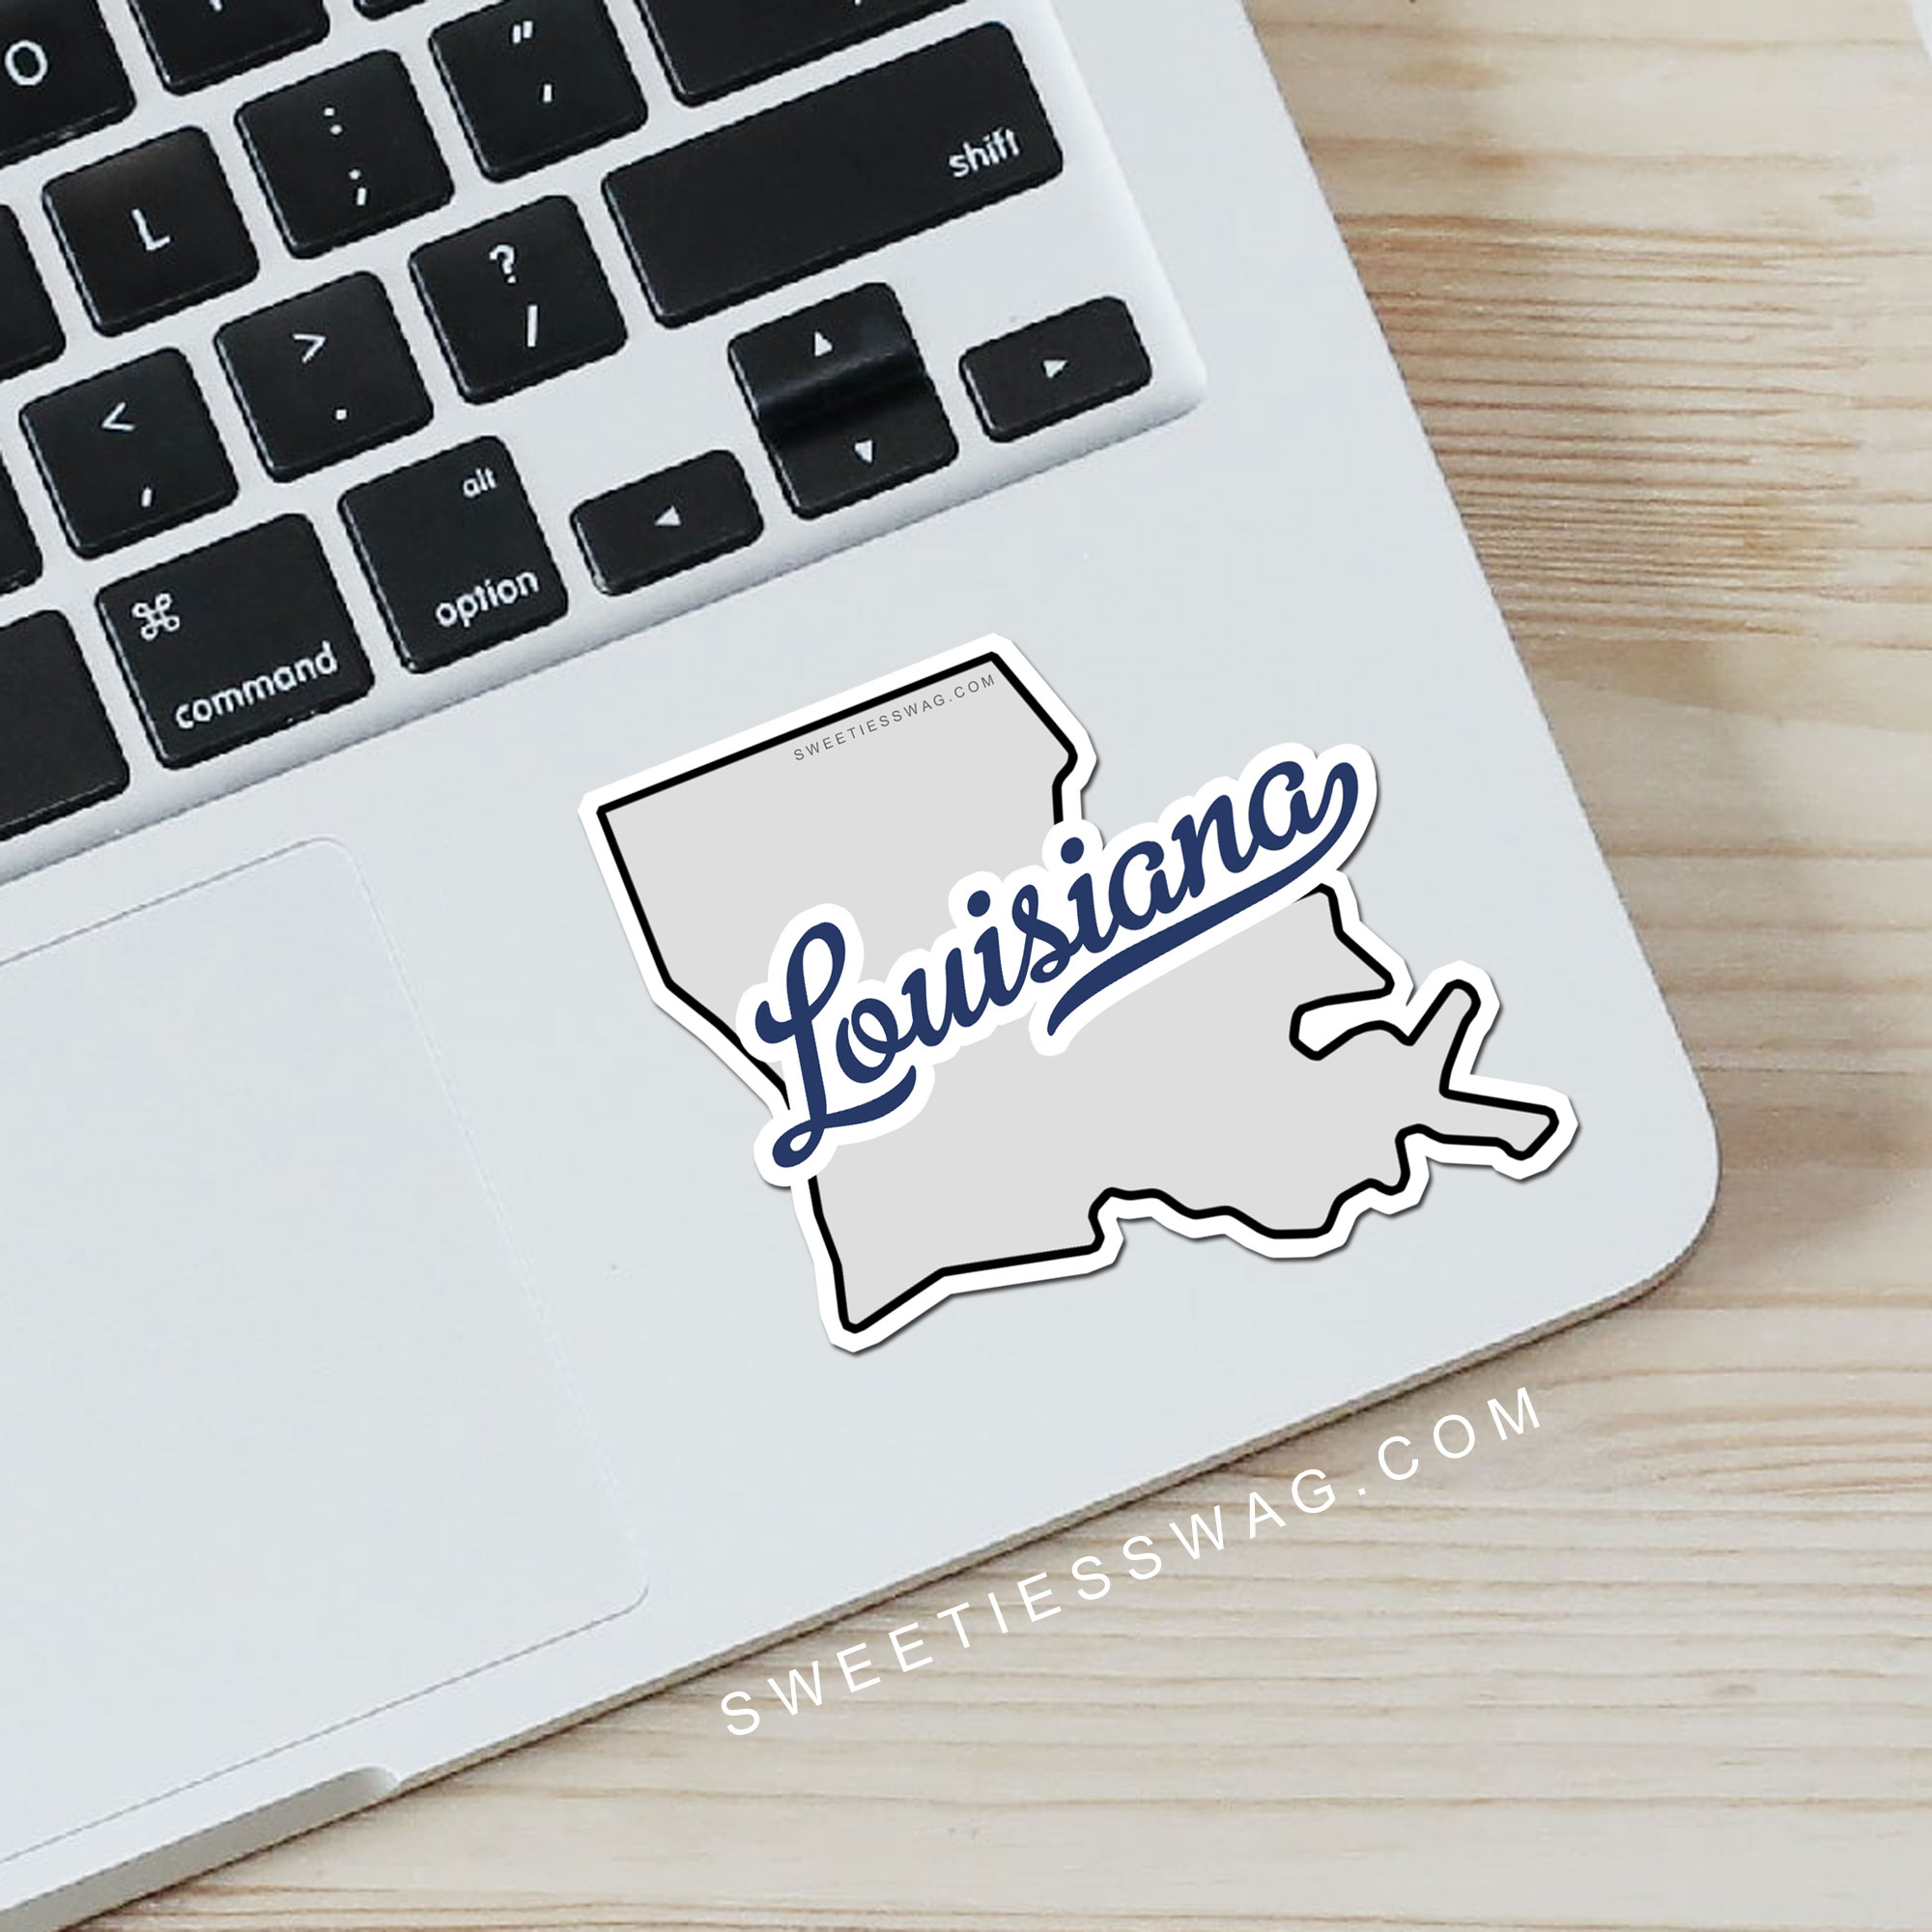 louisiana-diecut-sticker1